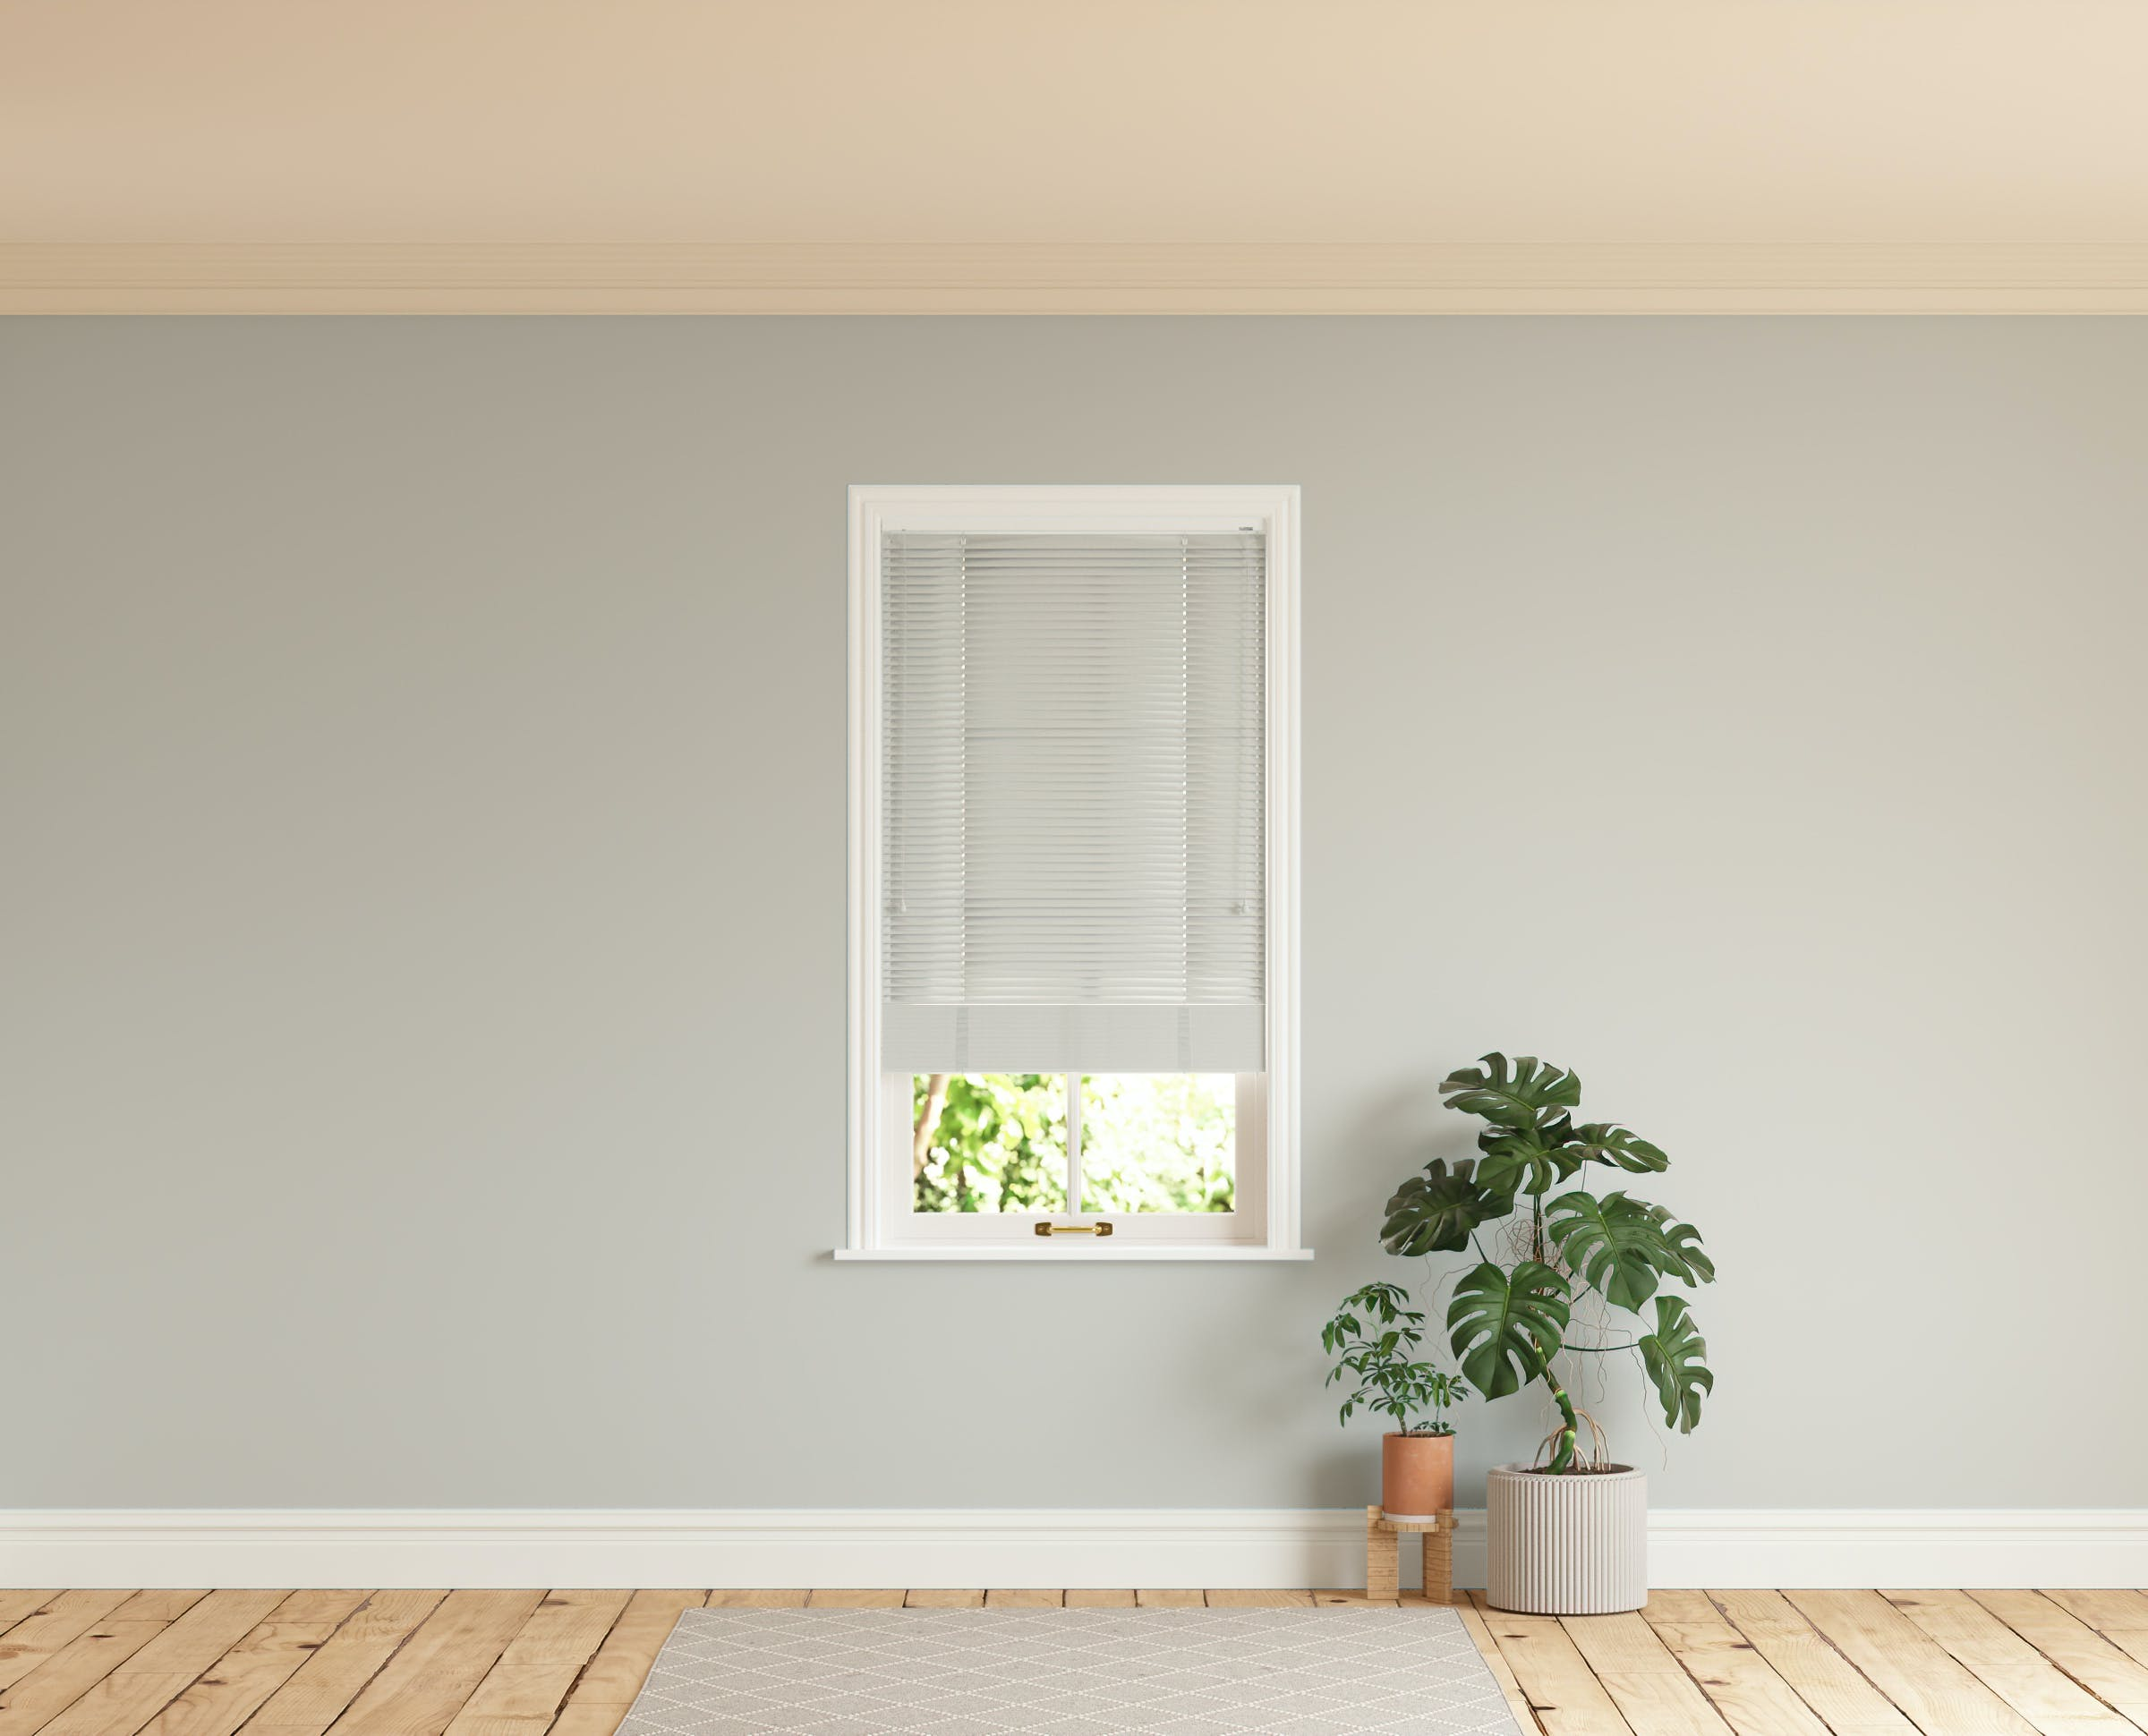 Room with walls painted in Lick Grey 03 and Grey 03 Venetian fine grain blinds